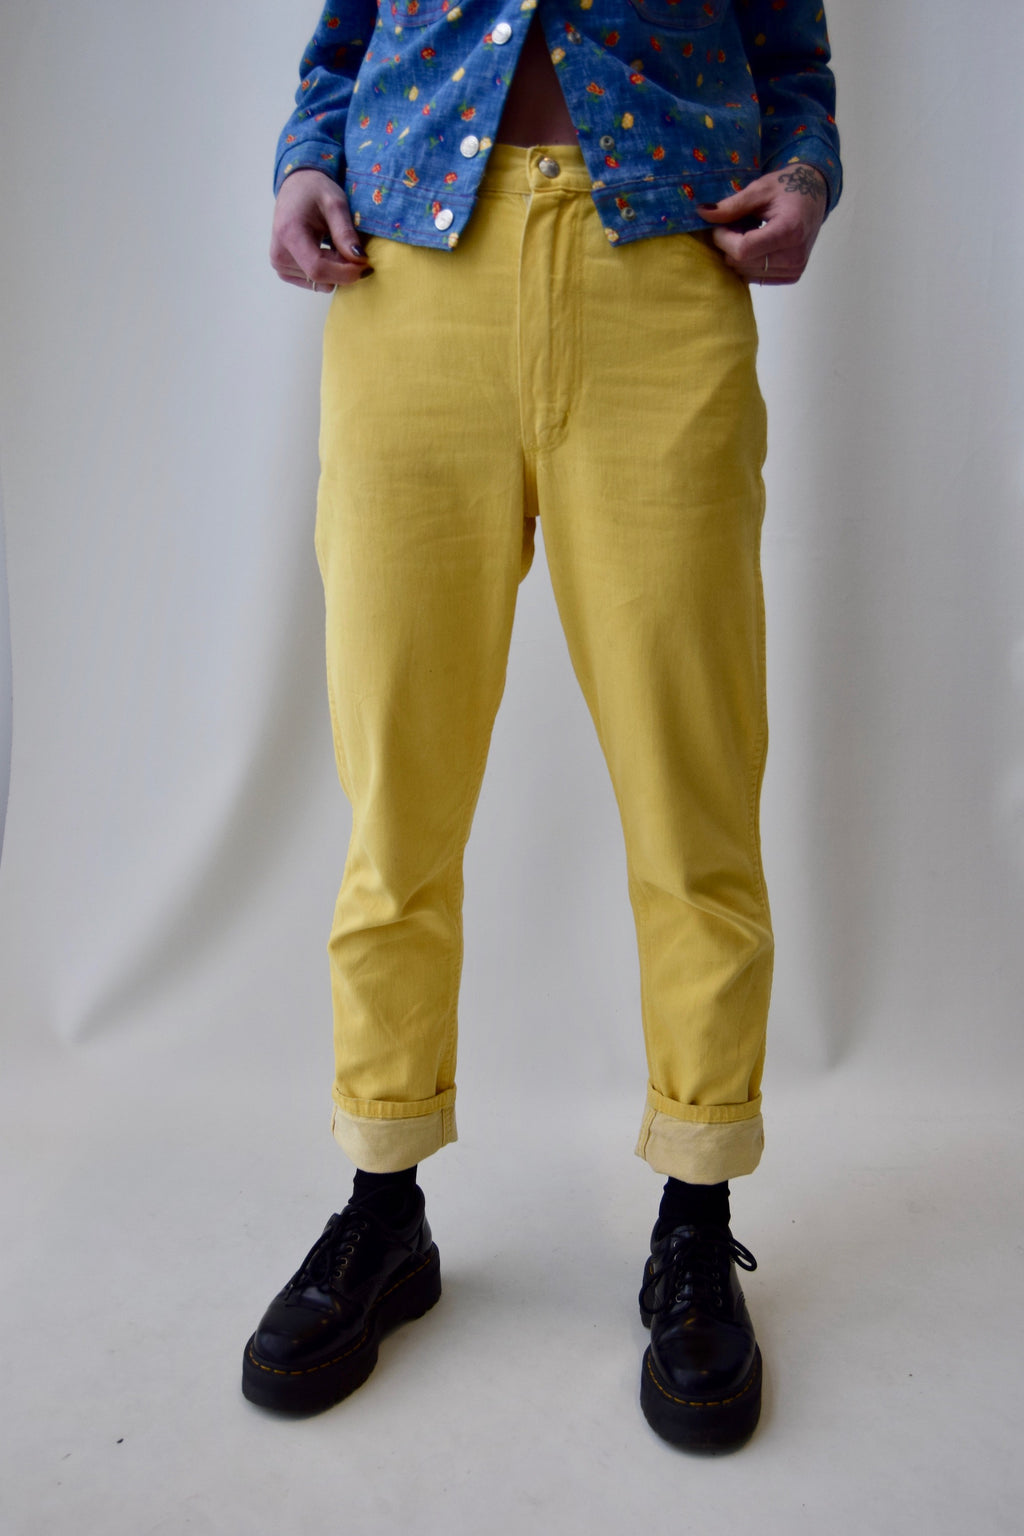 1960's Wrangler Misses Sunny Yellow Jeans FREE SHIPPING TO THE U.S.